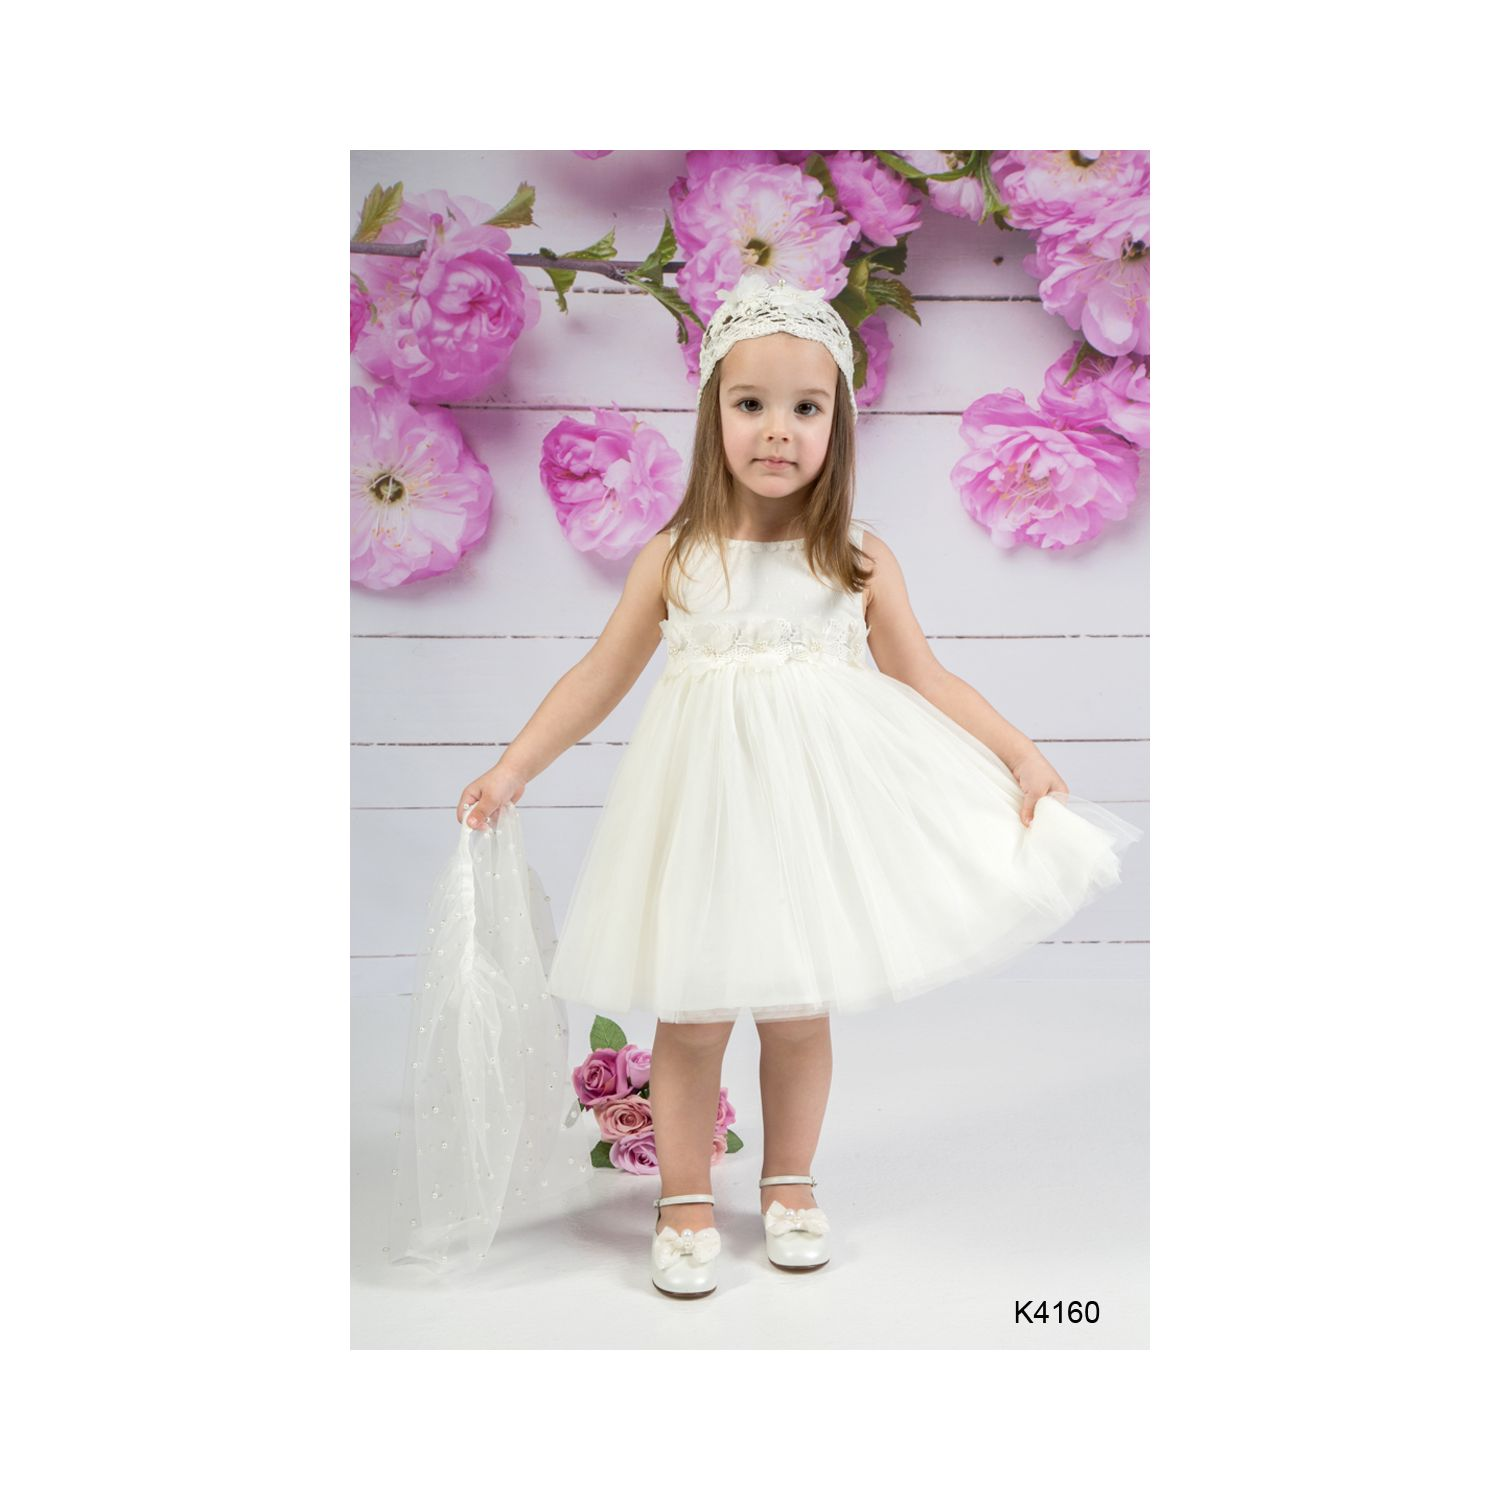 Romantic baptism dress K4160